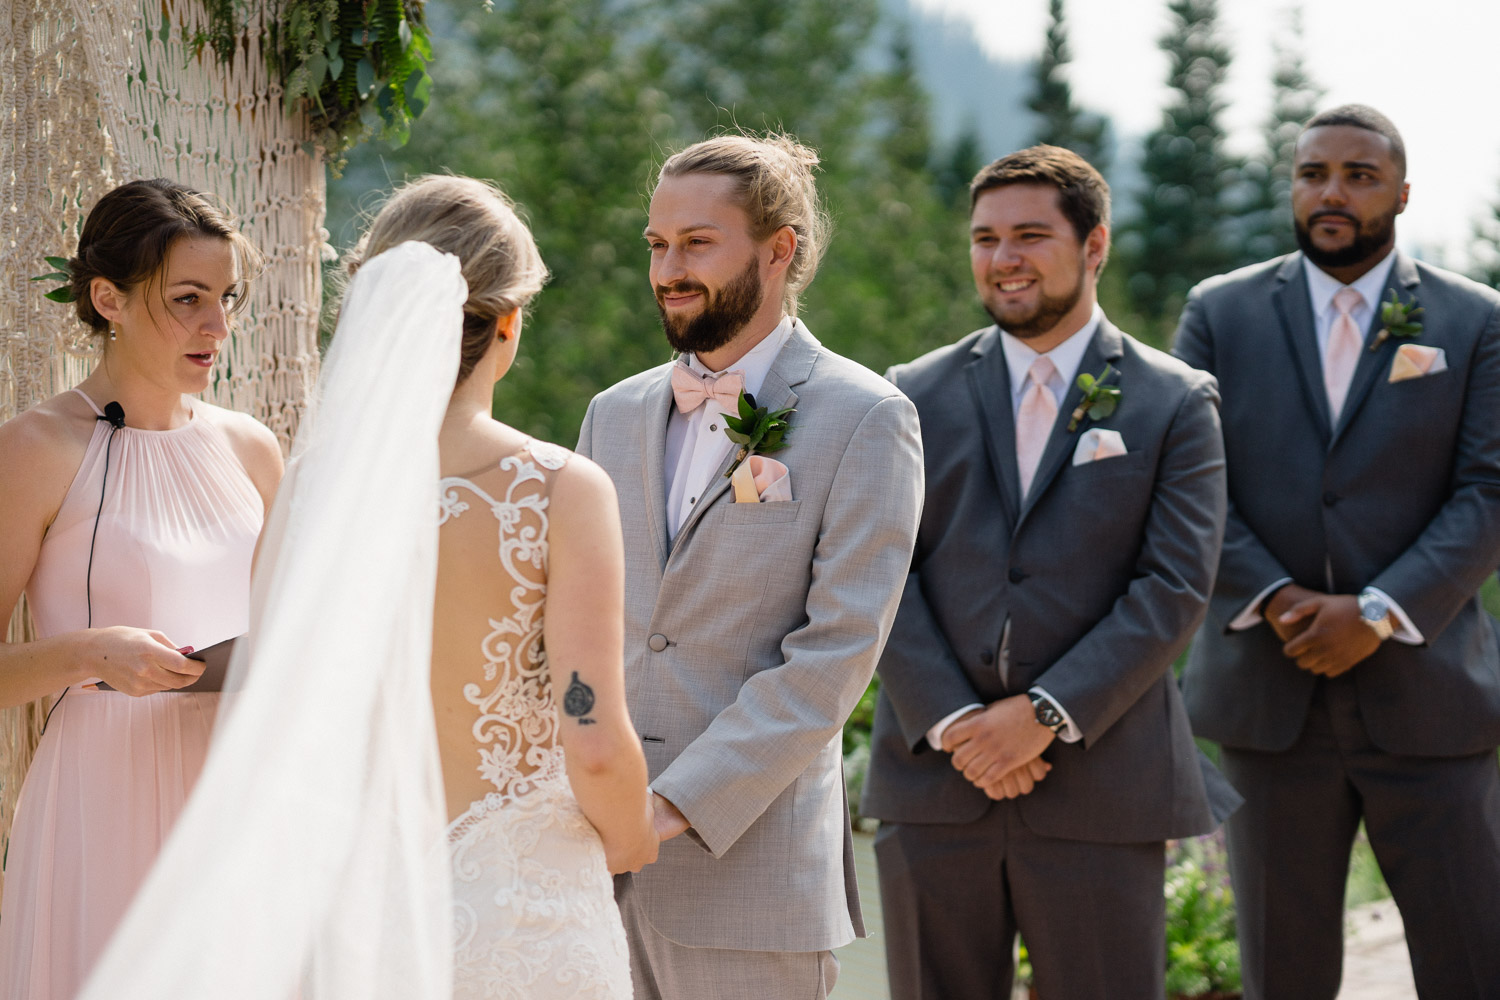 groom smiling at bride with officiant and grooms men alta resort